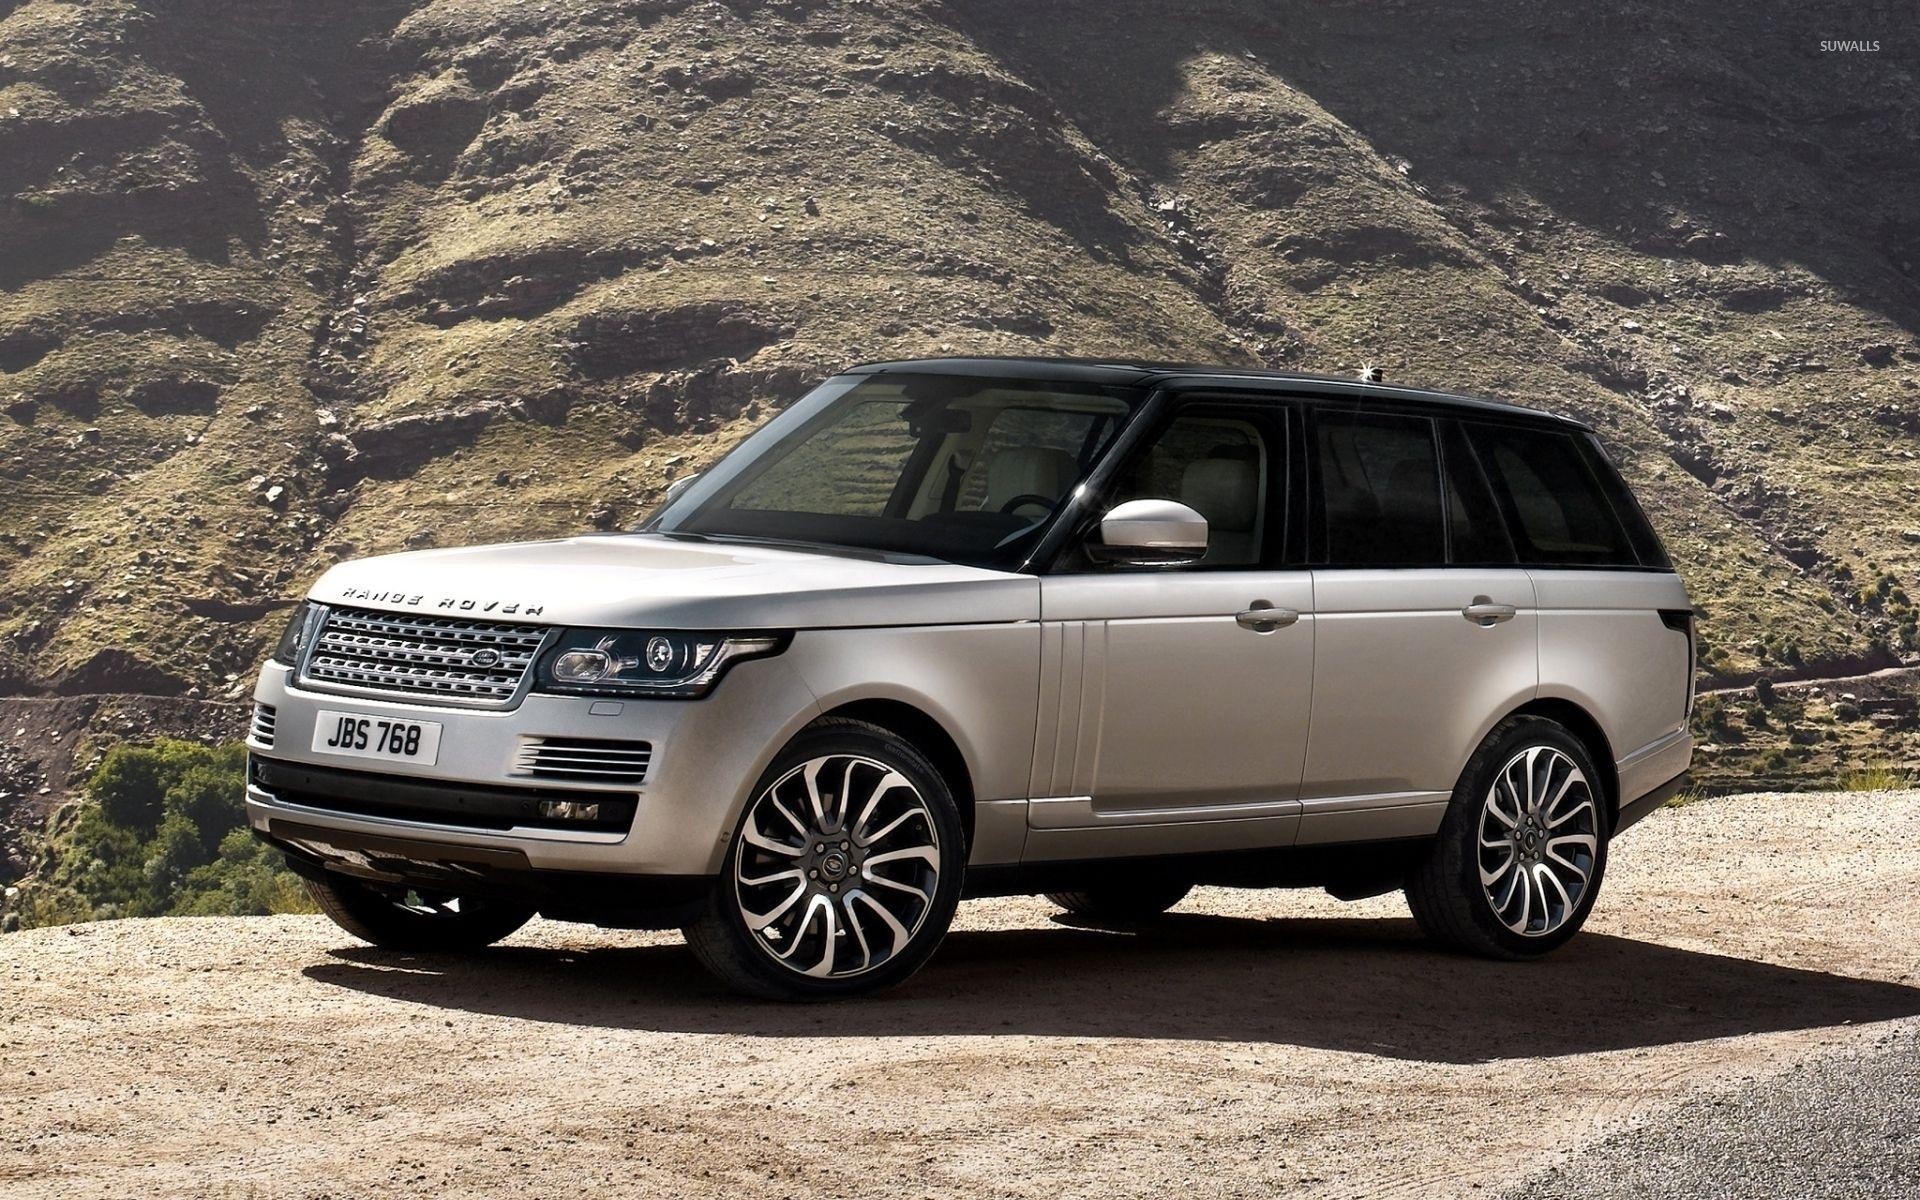 Land Rover Range Rover wallpaper - Car wallpapers - #39355